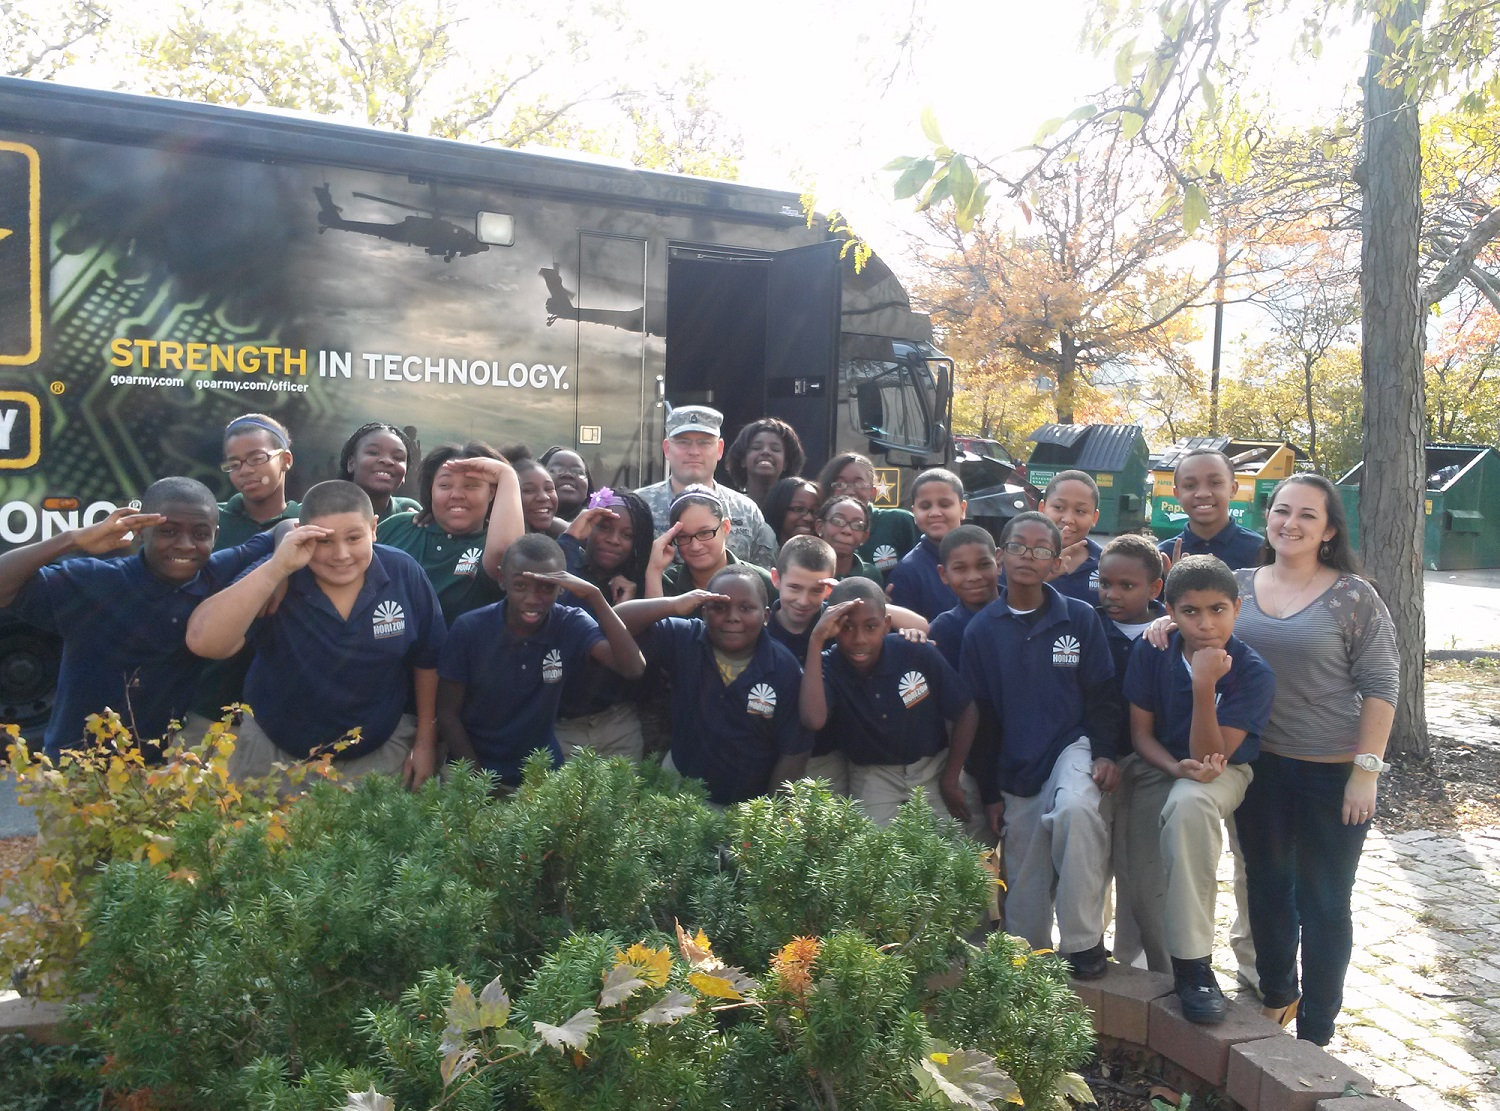 Students in 6th grade had the opportunity to visit the Army STEM truck that came to the HSA campus on Tuesday, October 29th.